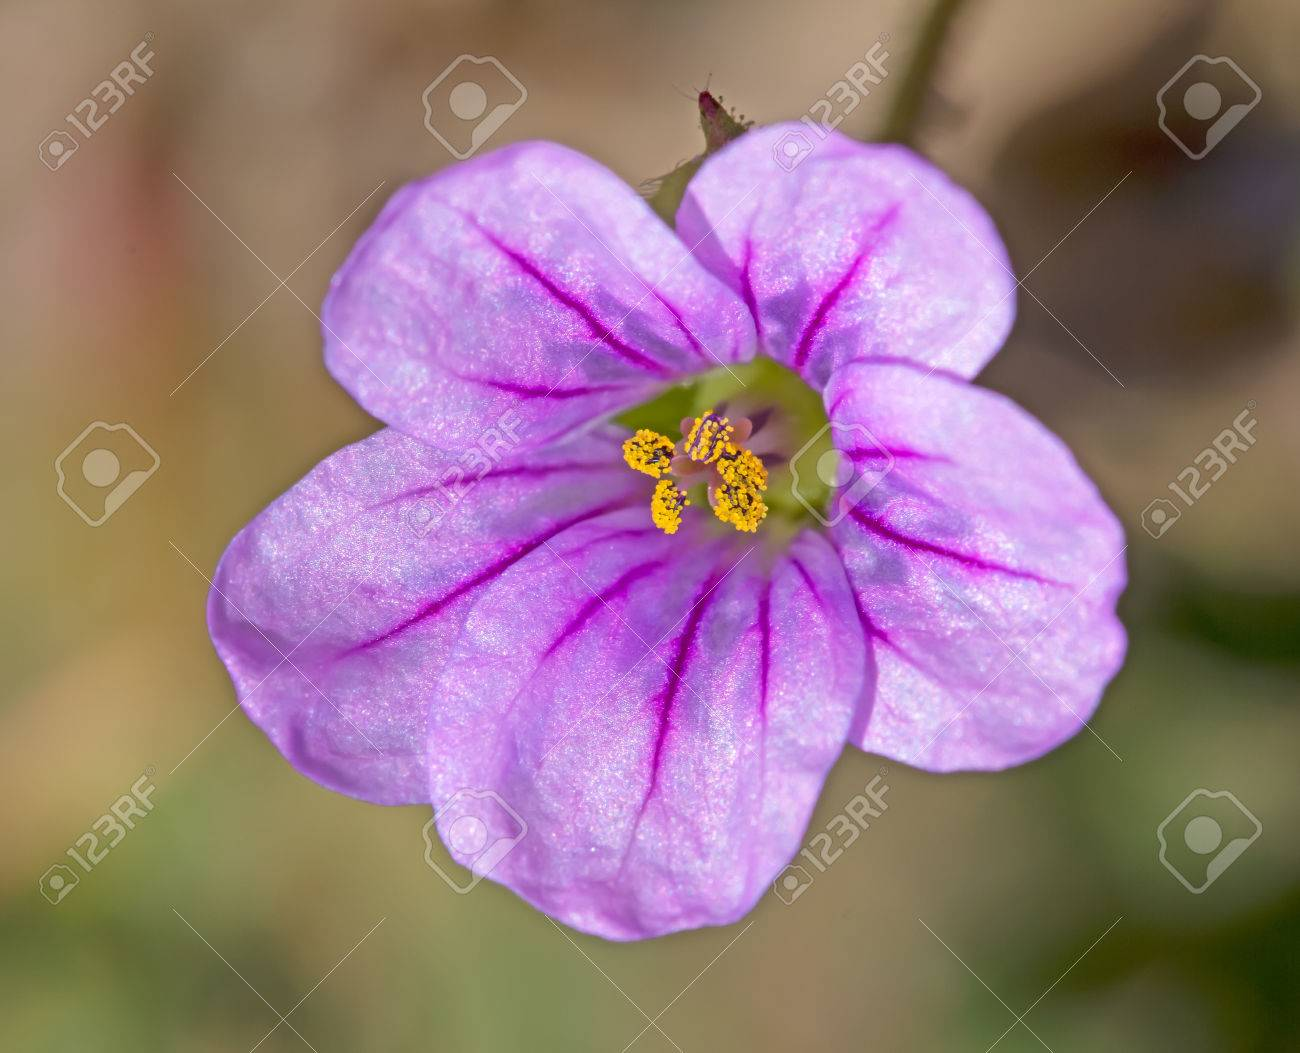 Pink Five Lobed Flower With Purple Veins And Yellow Pollen Filled